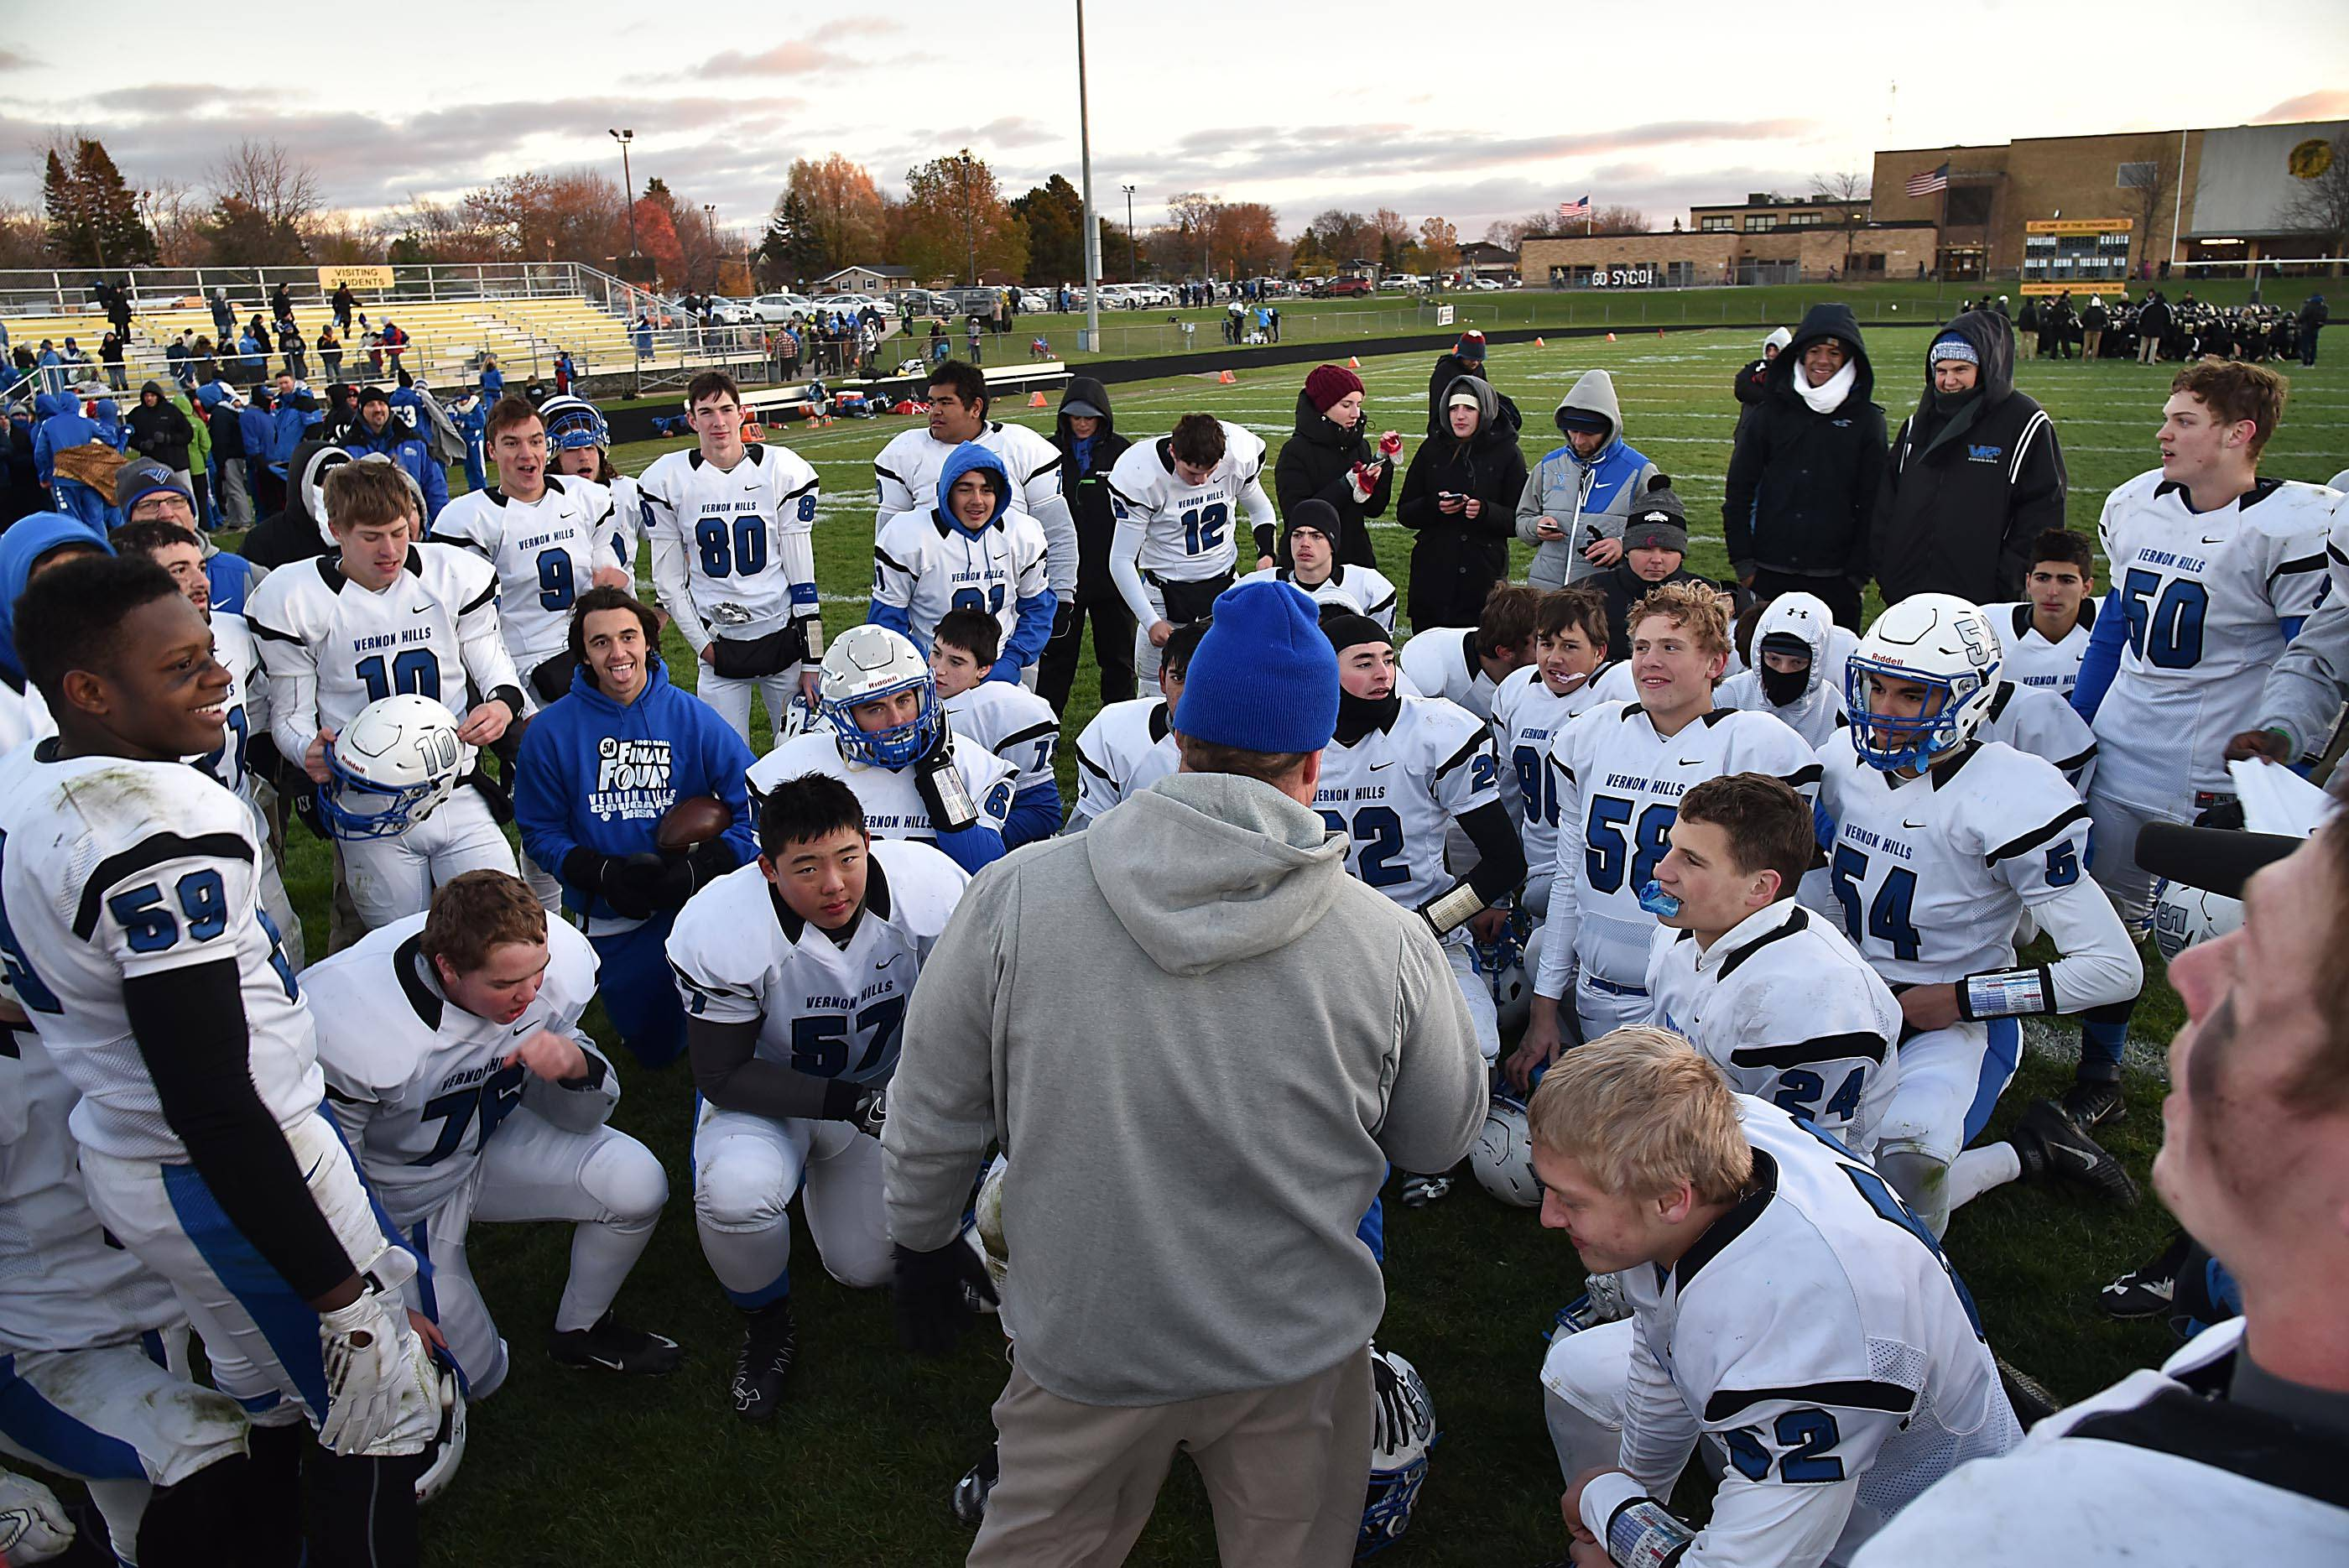 Vernon Hills players gather around their coach after beating Sycamore on Saturday in the Class 5A football state semifinal game in Sycamore.